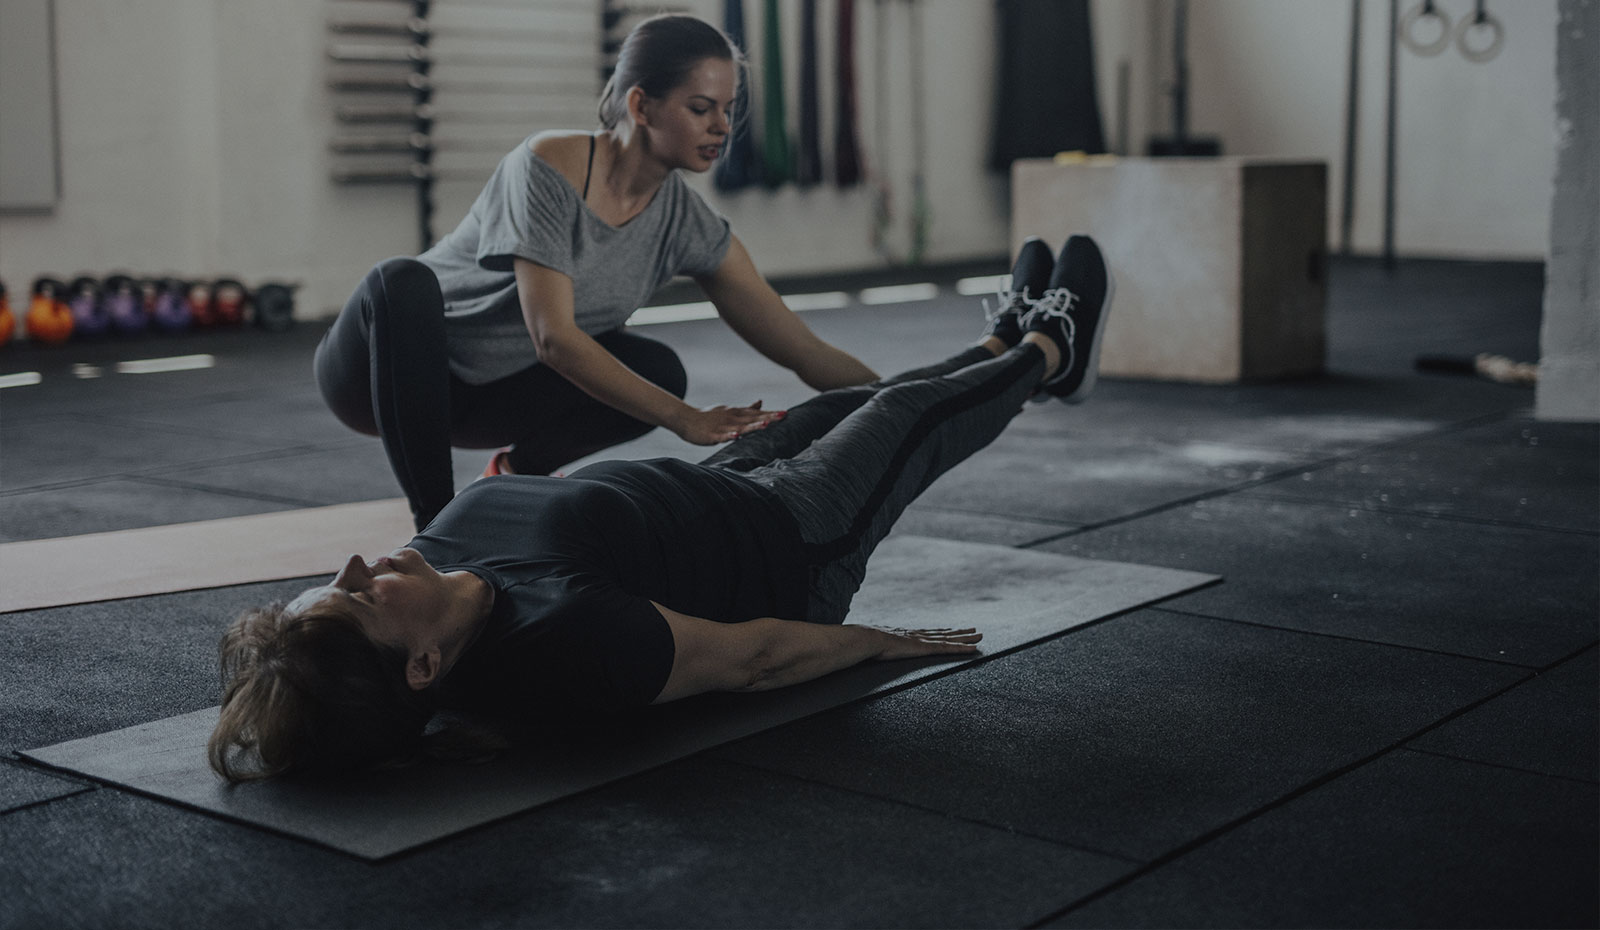 Barrhaven Personal Training Services